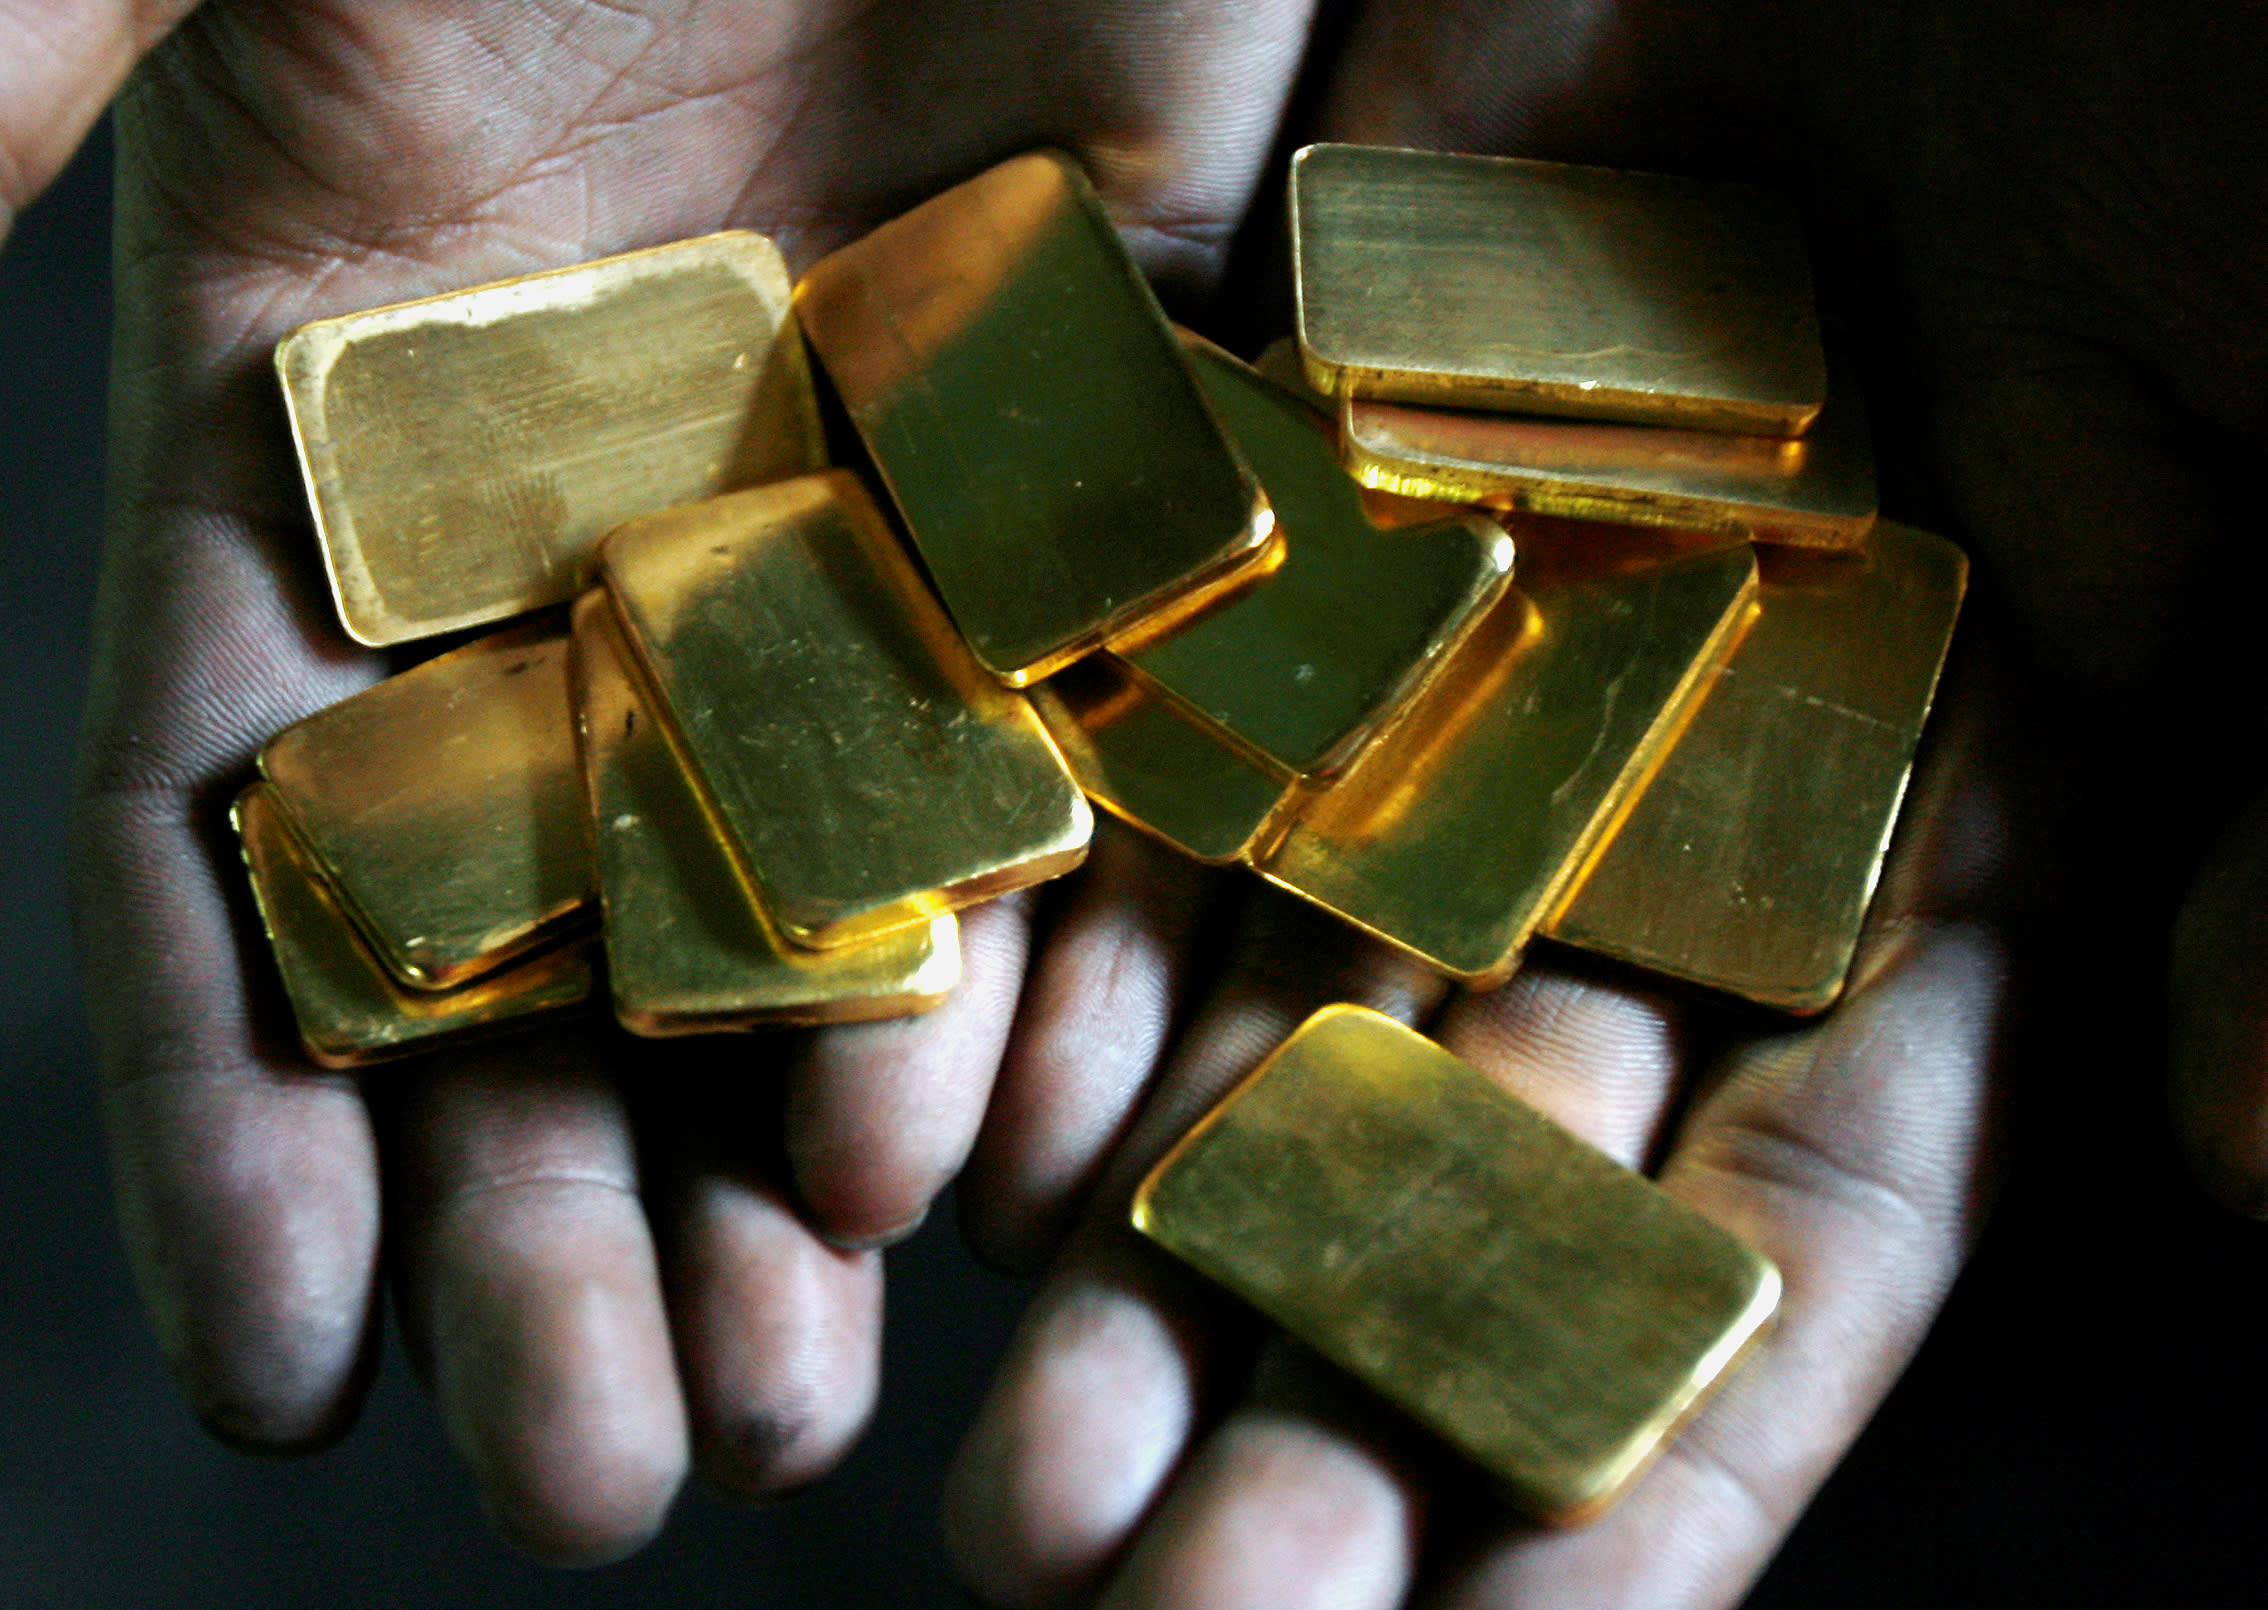 Nepal takes a central role in China-India gold smuggling